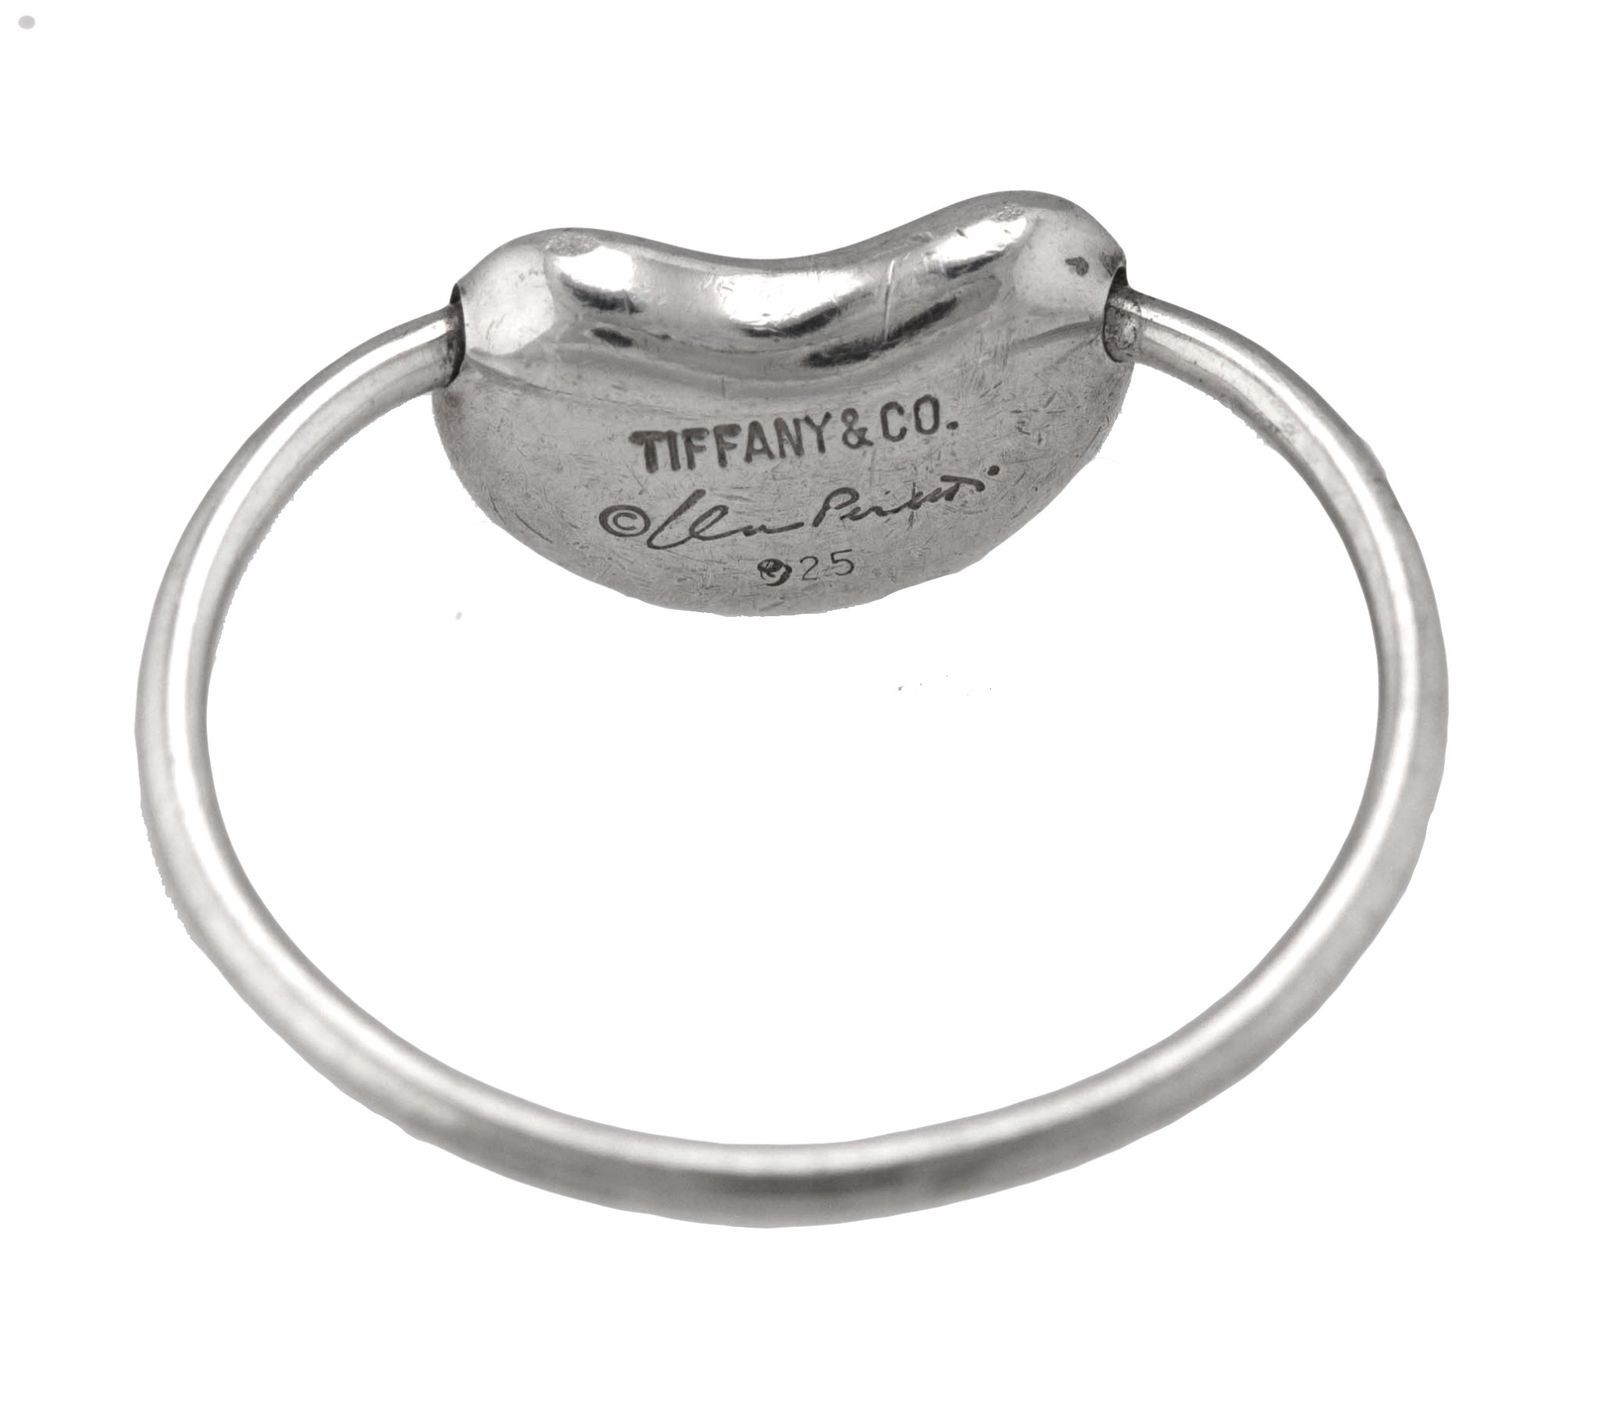 9d46593ff Authentic Tiffany & Co. 925 Sterling Silver Elsa Peretti Bean Ring Size:  4.50